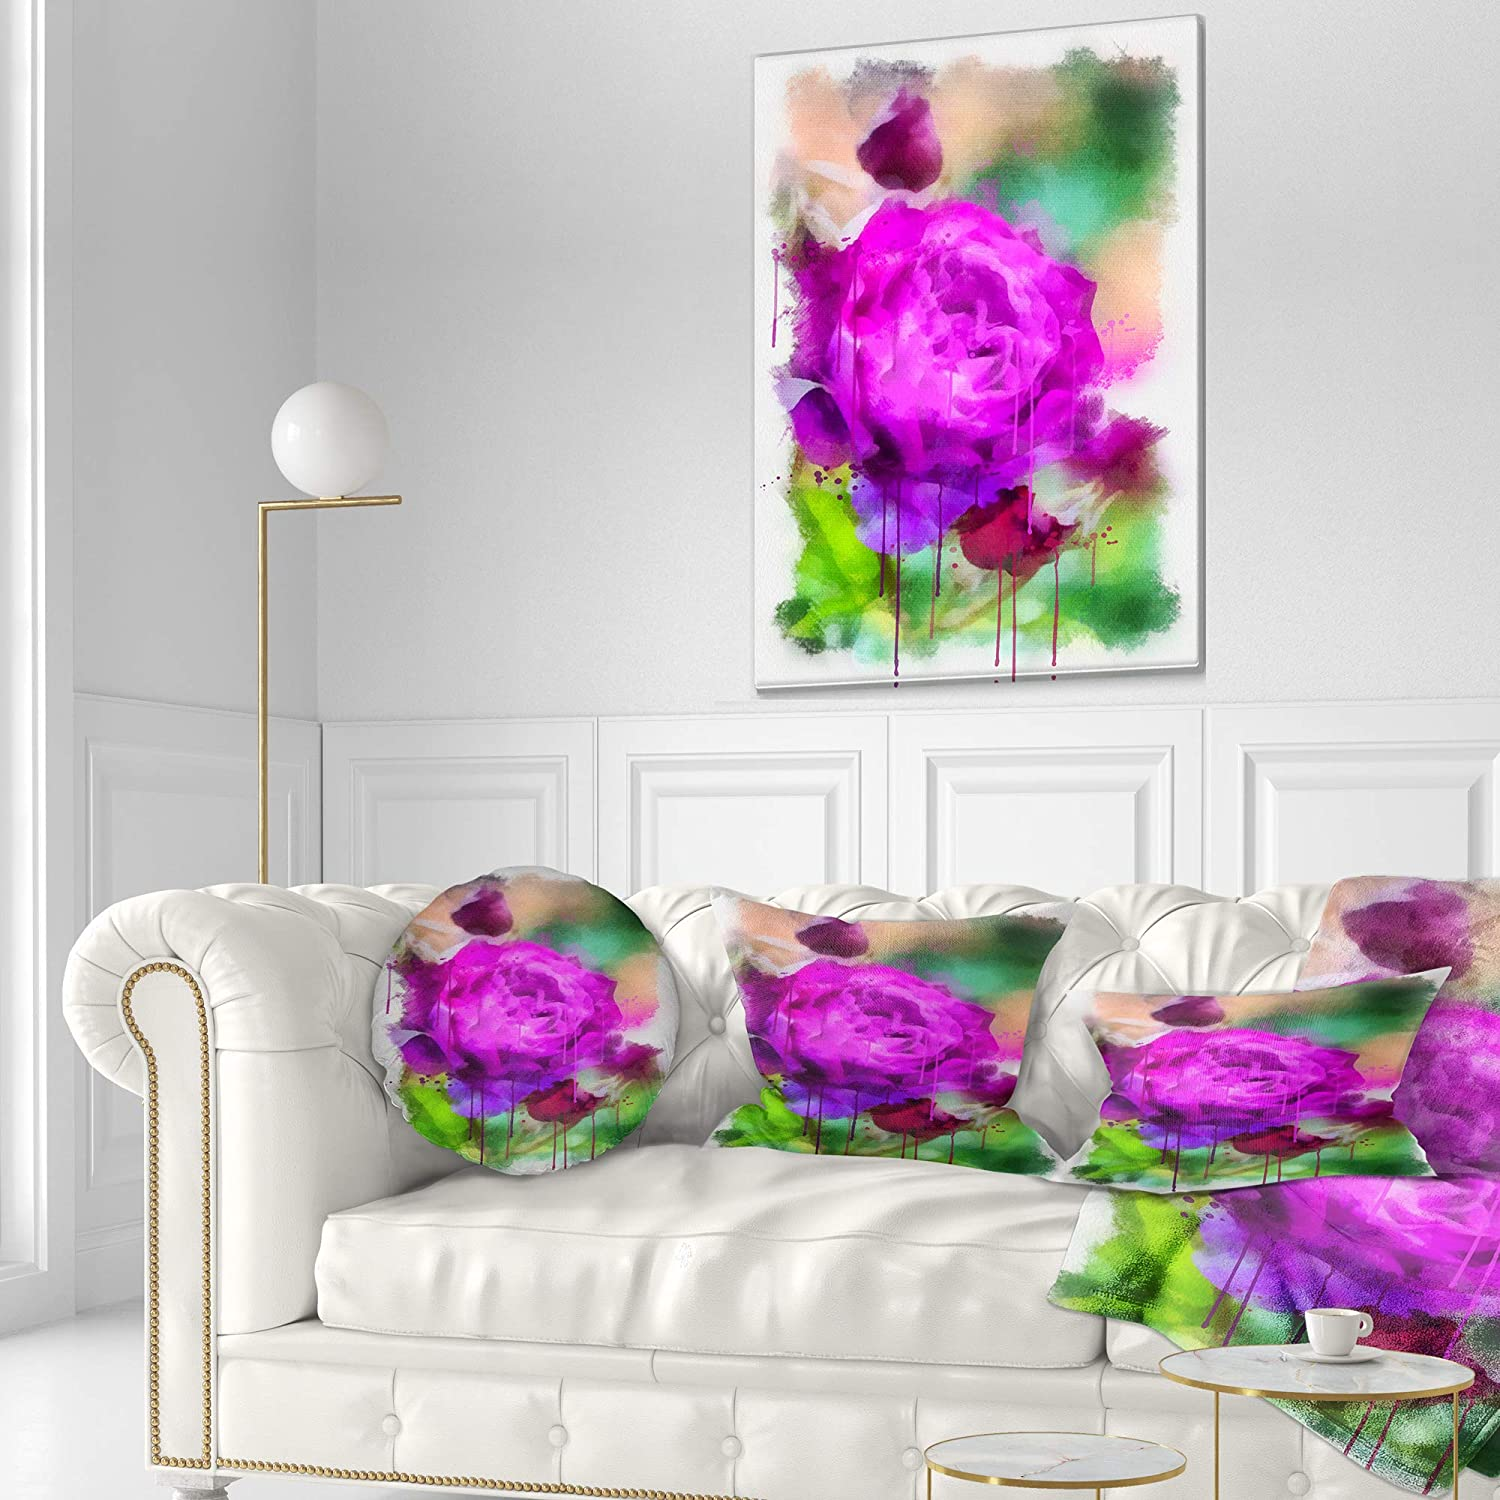 Designart CU13690-20-20-C Purple Watercolor Rose Painting Floral Round Cushion Cover for Living Room Sofa Throw Pillow 20